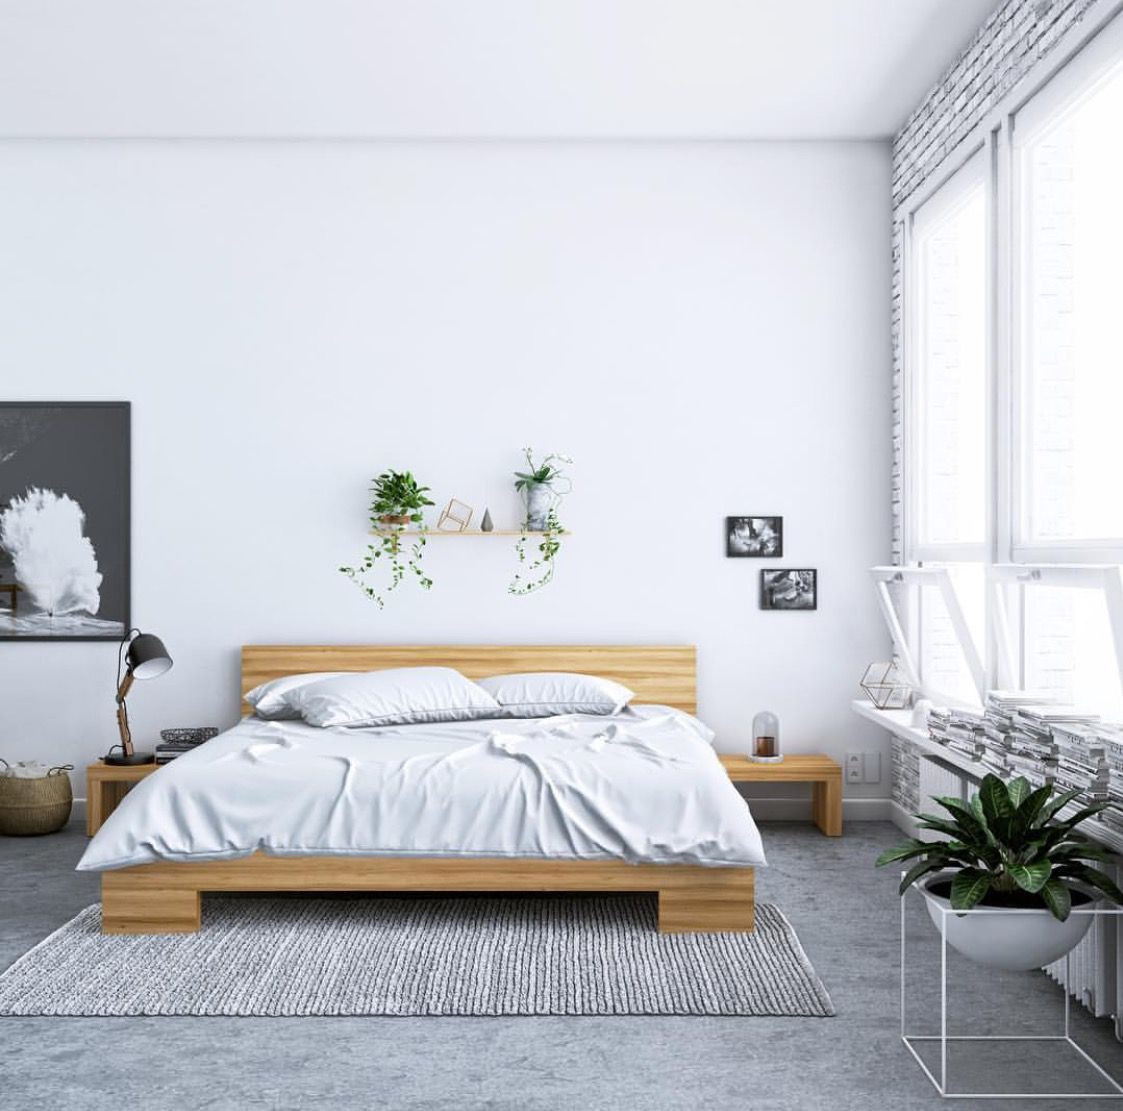 modern bedroom designs%0A Find this Pin and more on Bedrooms ideas by yaseminaykan